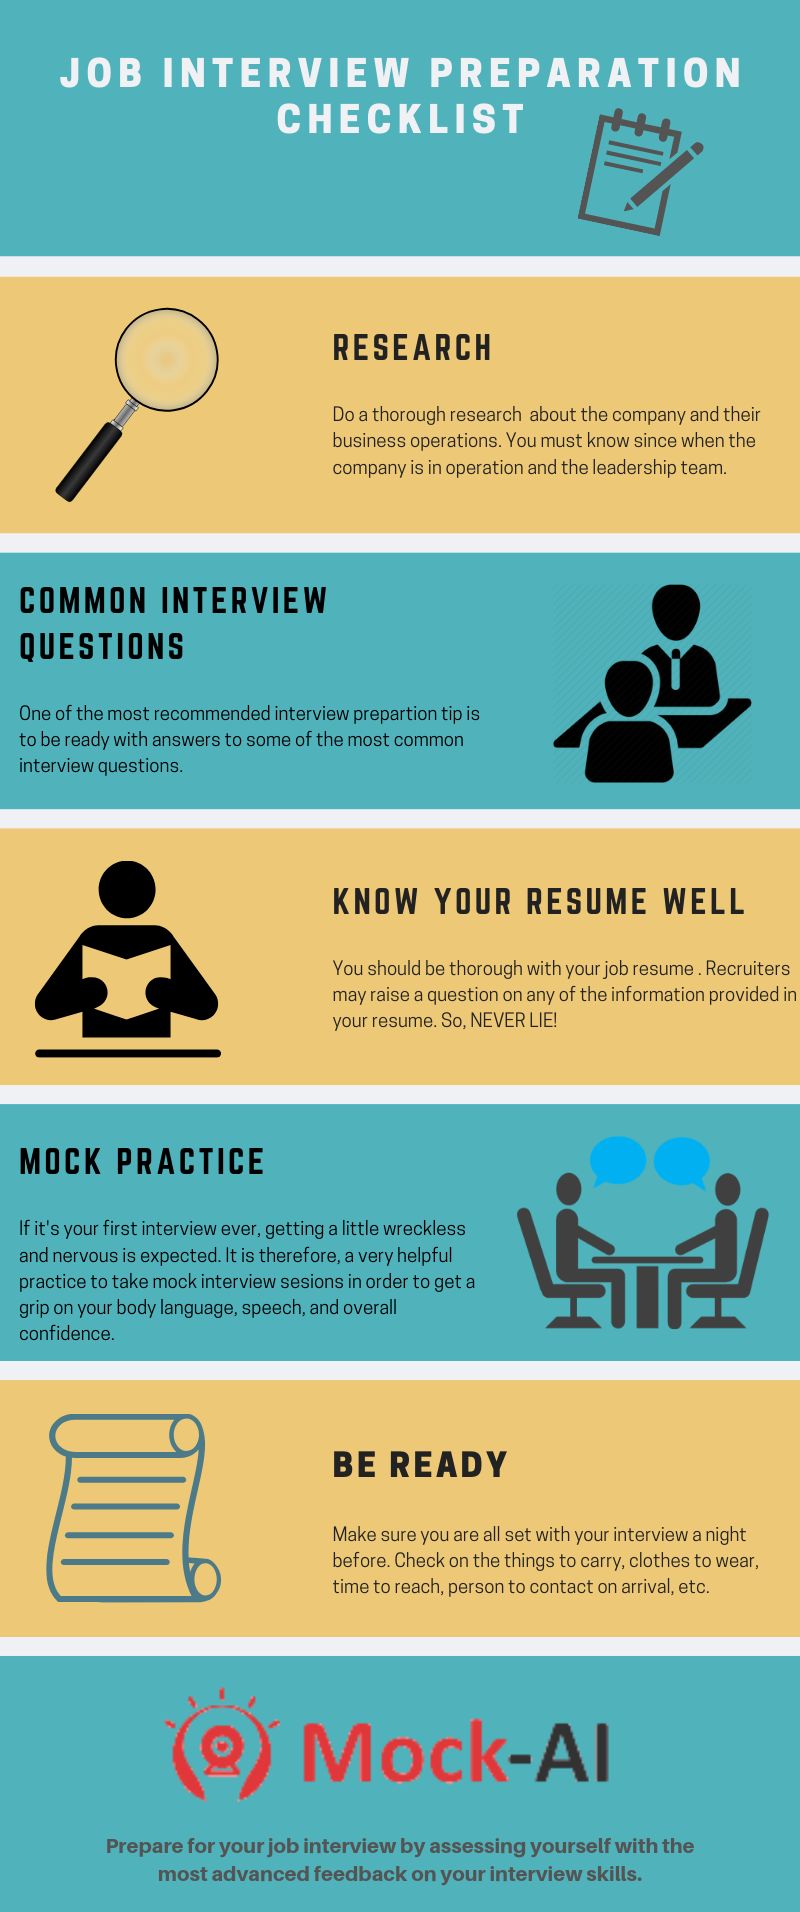 job interview preparation infographic